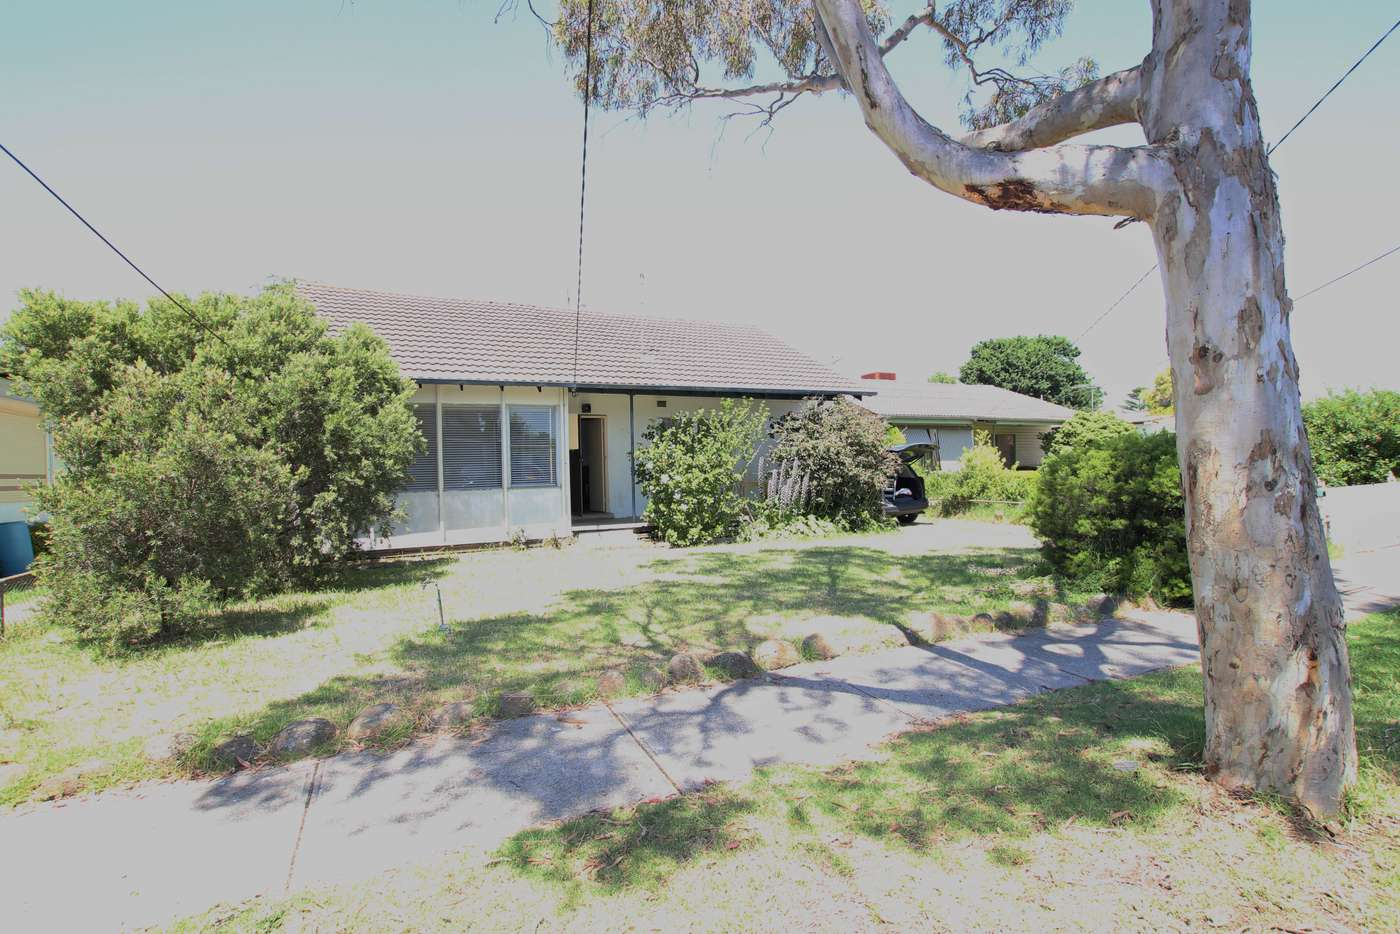 Main view of Homely house listing, 18 Mutton Road, Fawkner VIC 3060